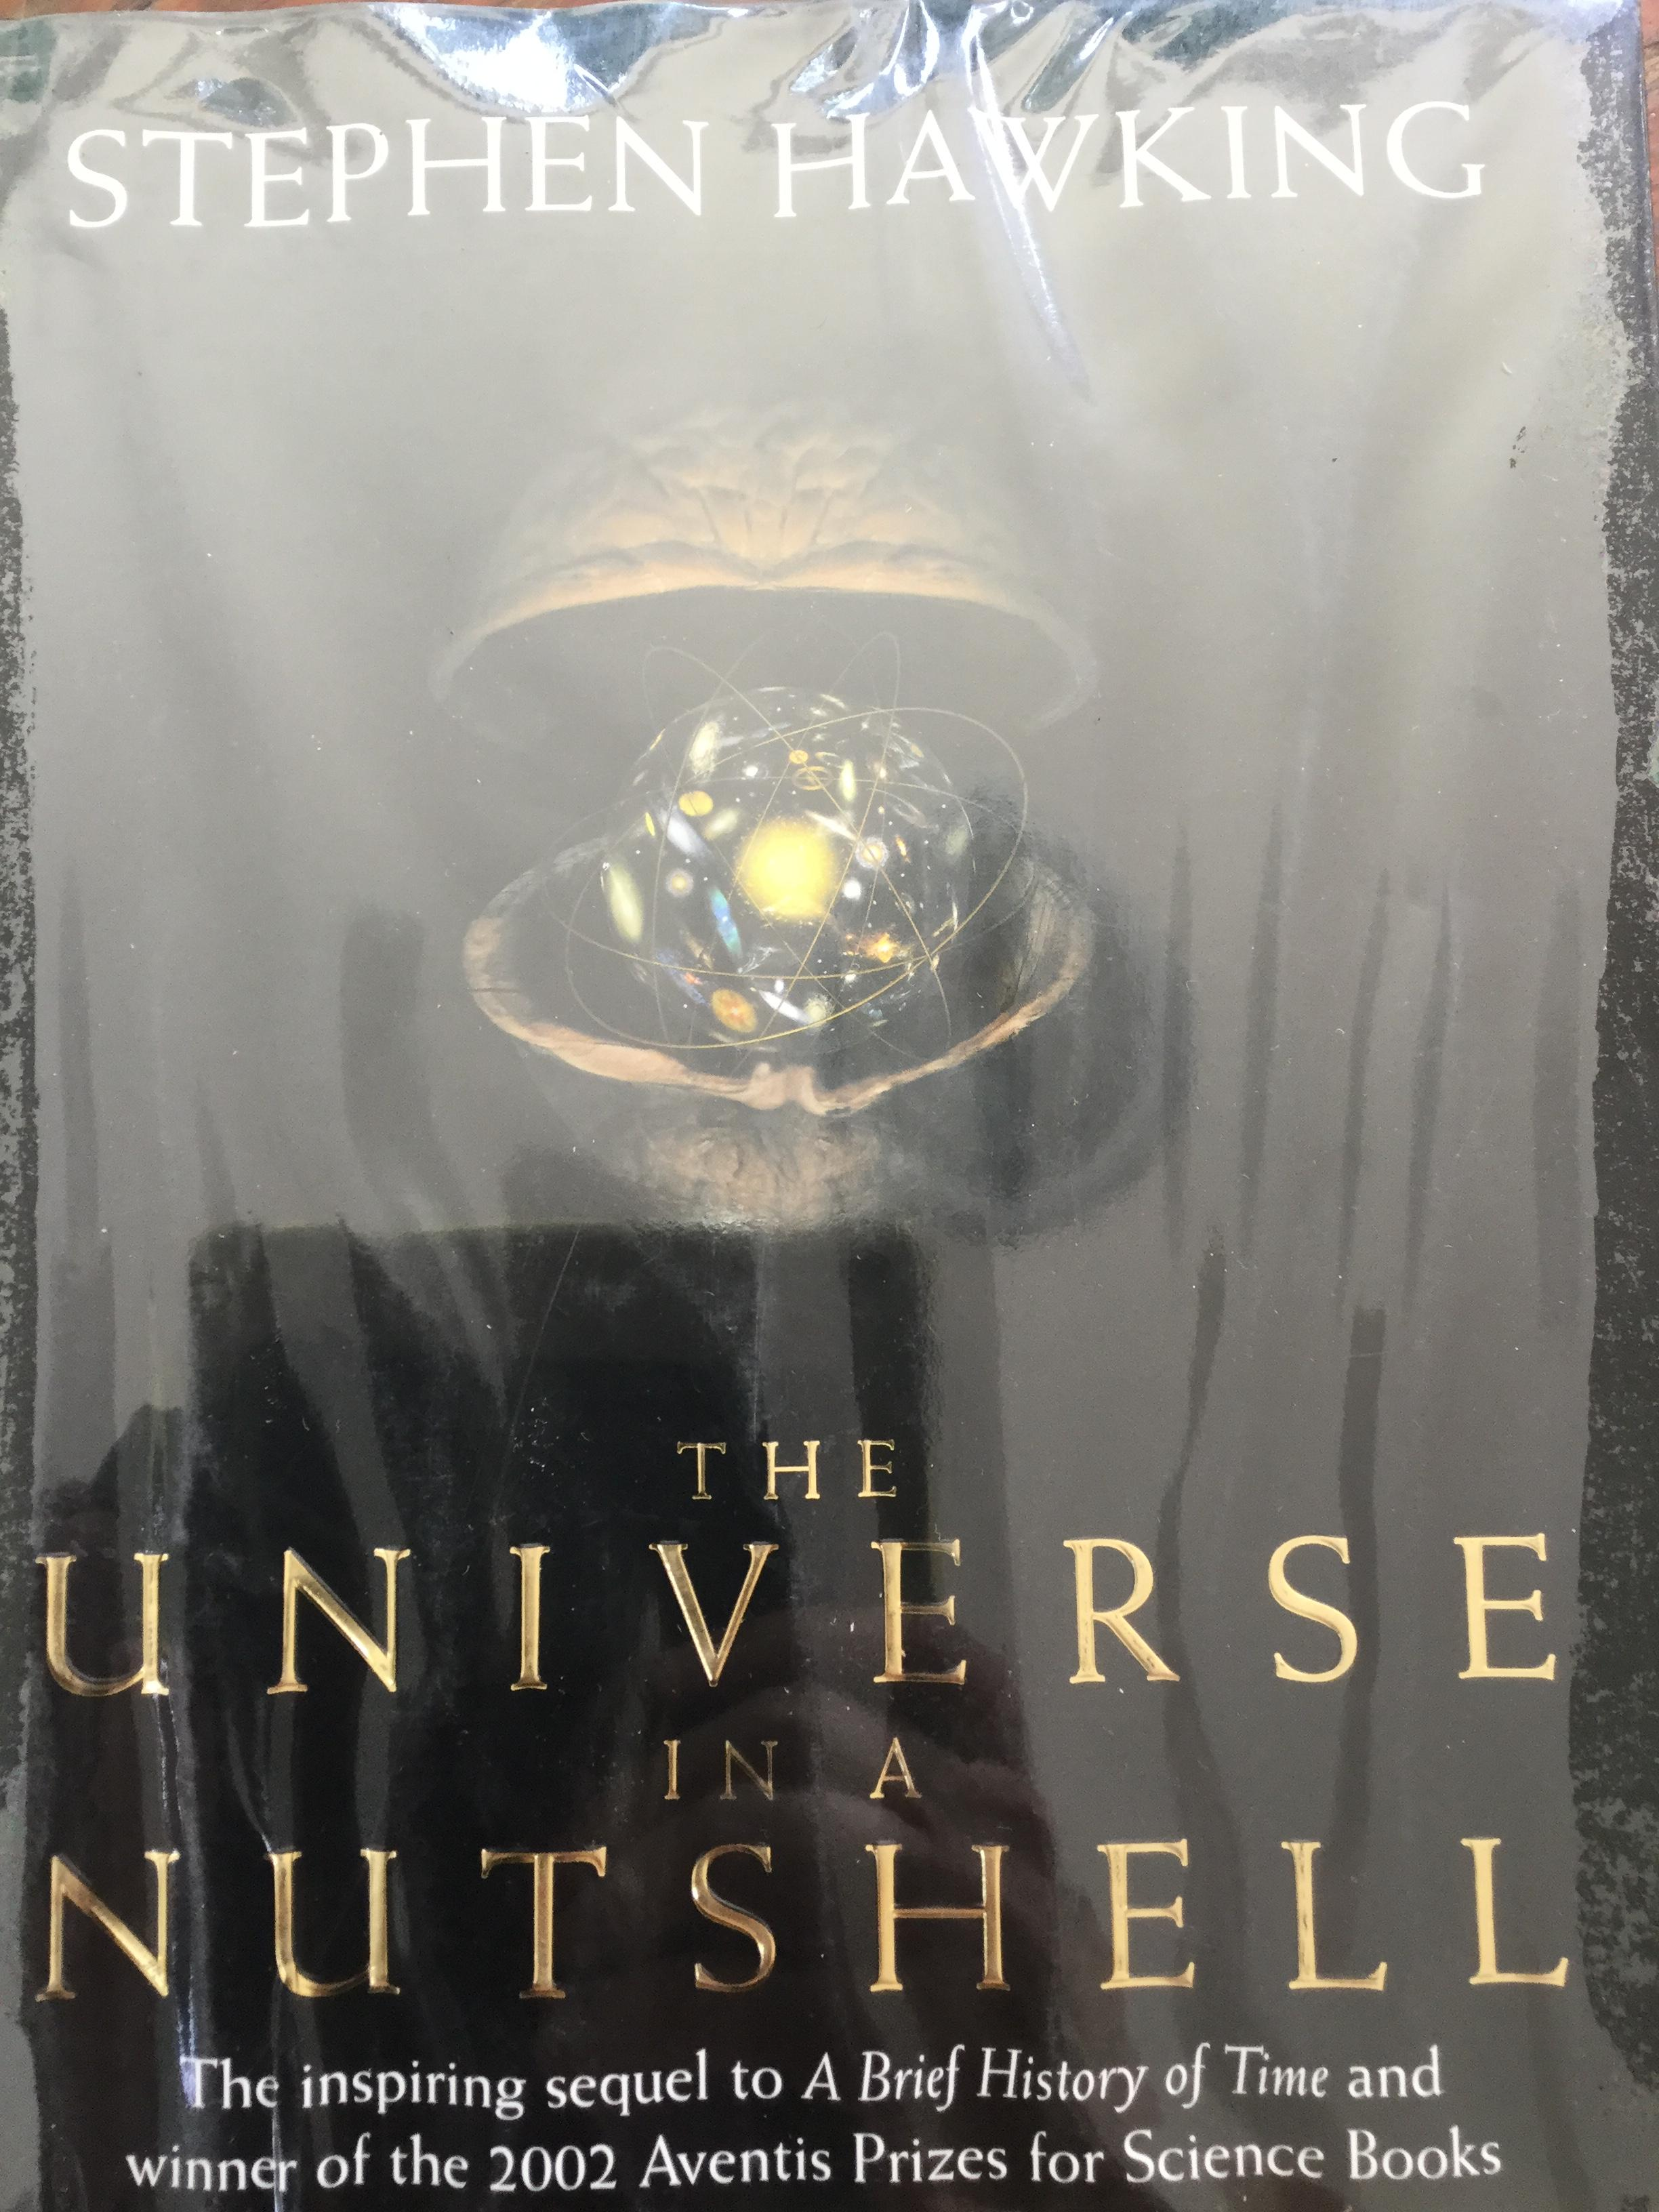 The UNIVERSE in a NUTSHELL The inspiring sequel to A Brief History of Time and winner of the 2002 Aventis Prizes for Science Books. ผู้เขียน Stephen Hawking